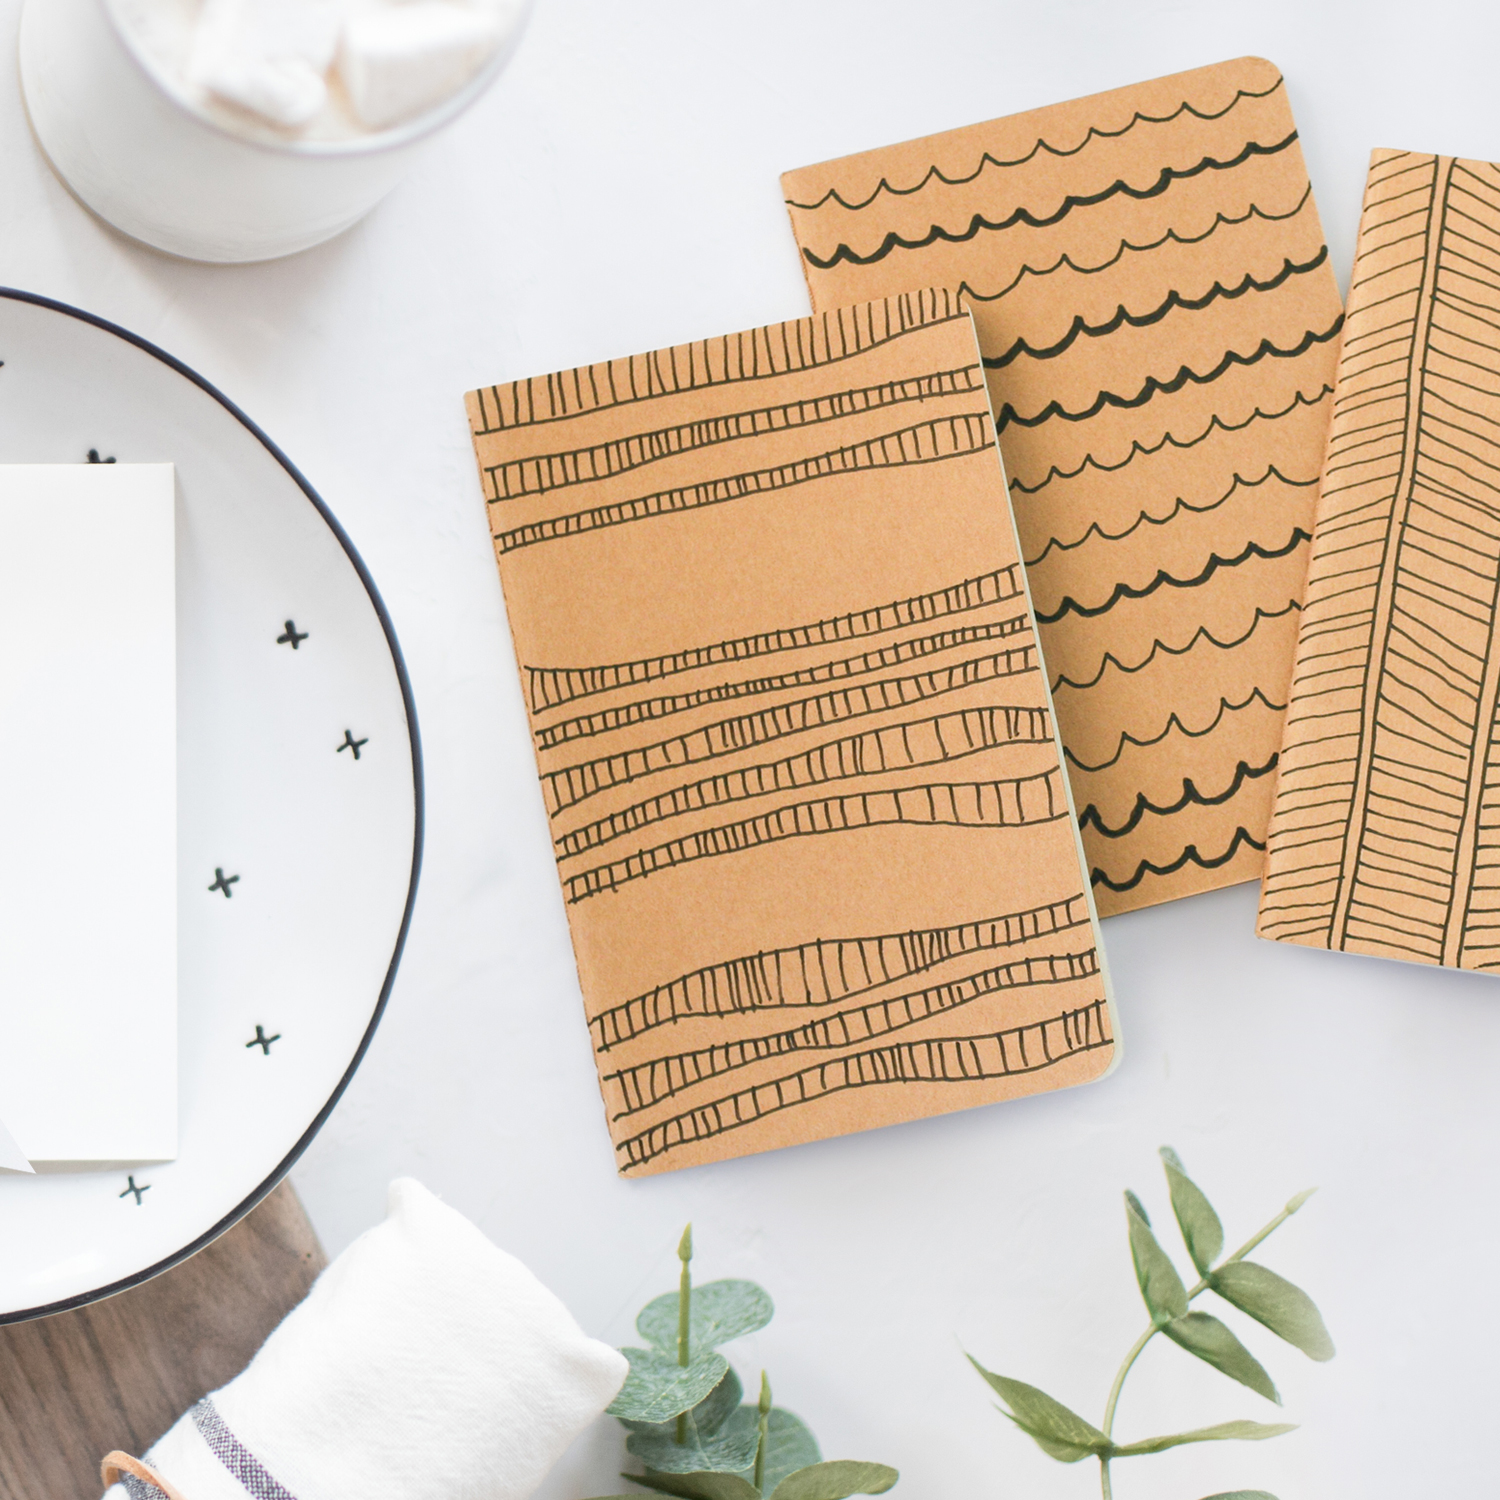 DIY-notebooks-group.jpg